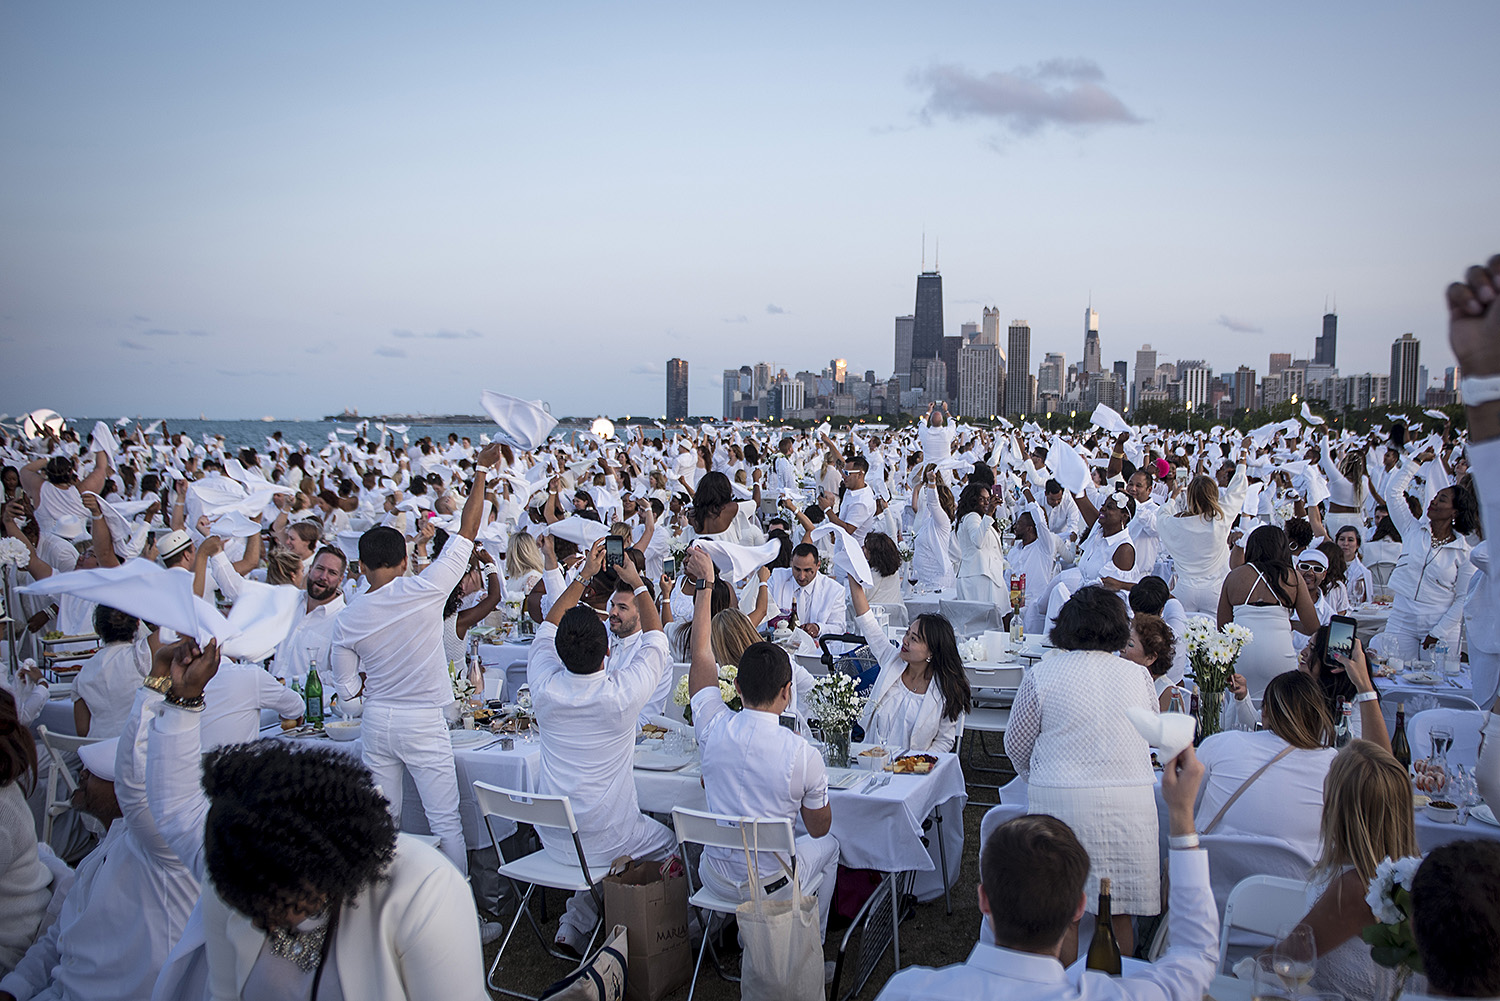 Guests attend Dinner en Blanc, a communal picnic in which attendees wear all white, in Chicago, IL on Thursday August 24, 2017. Photographer: Christopher Dilts / Sipa USA